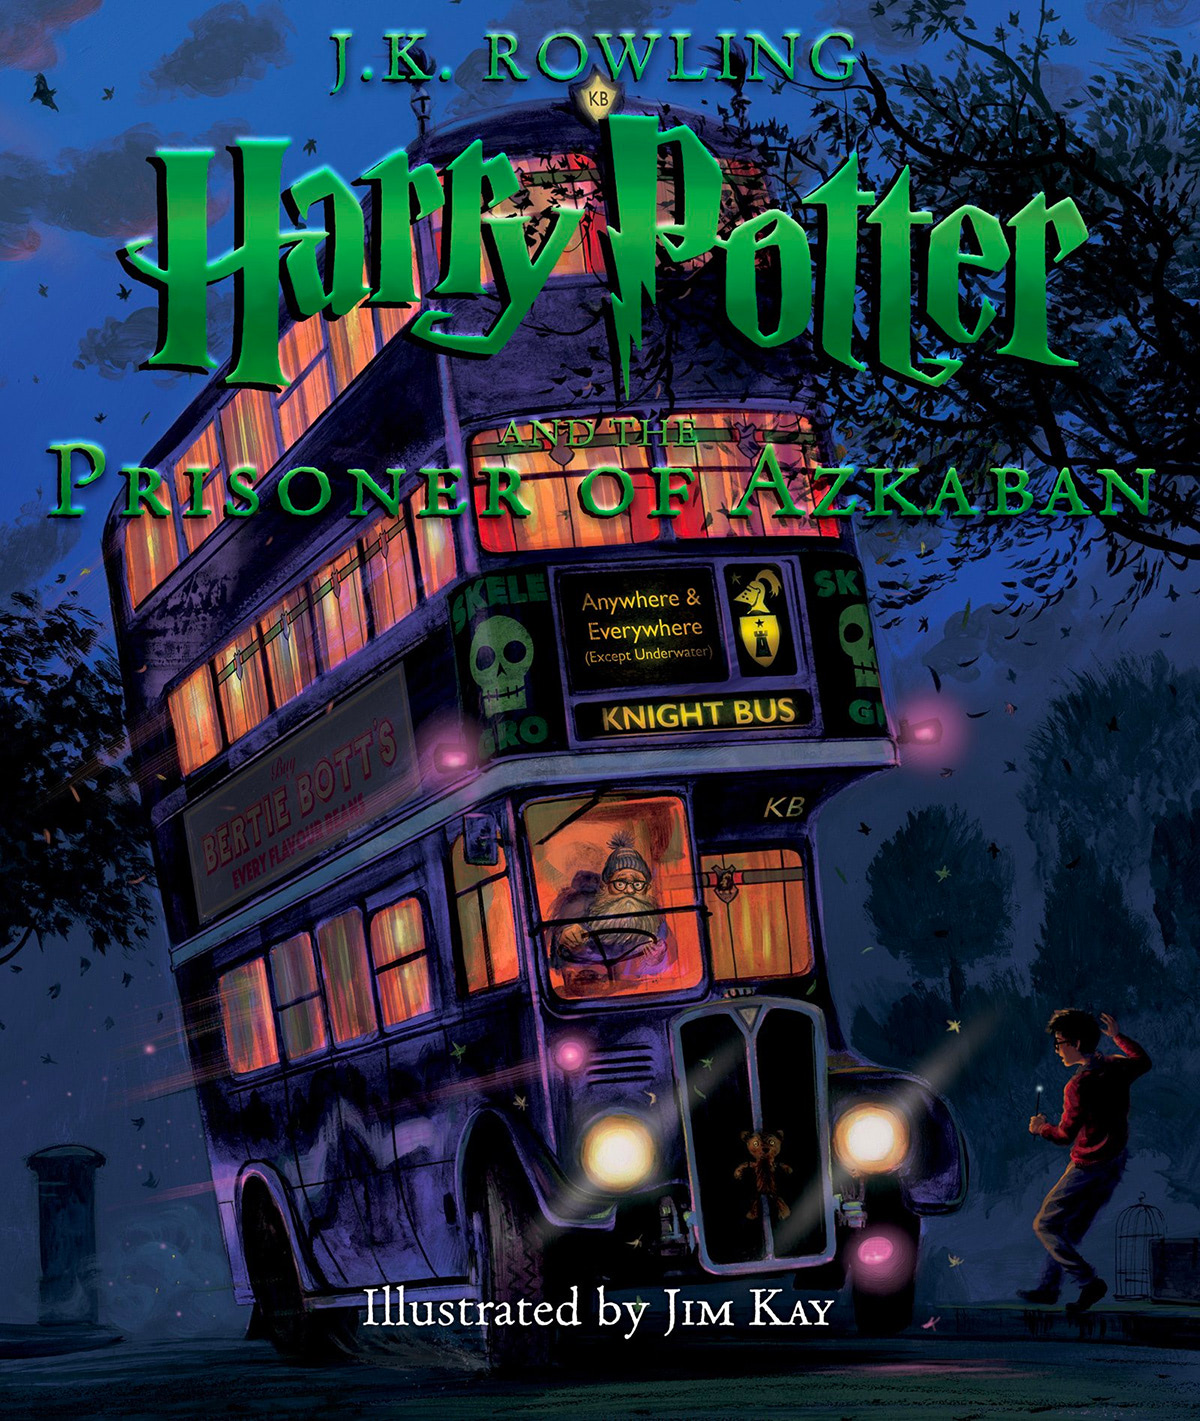 'Prisoner of Azkaban' illustrated edition (US)